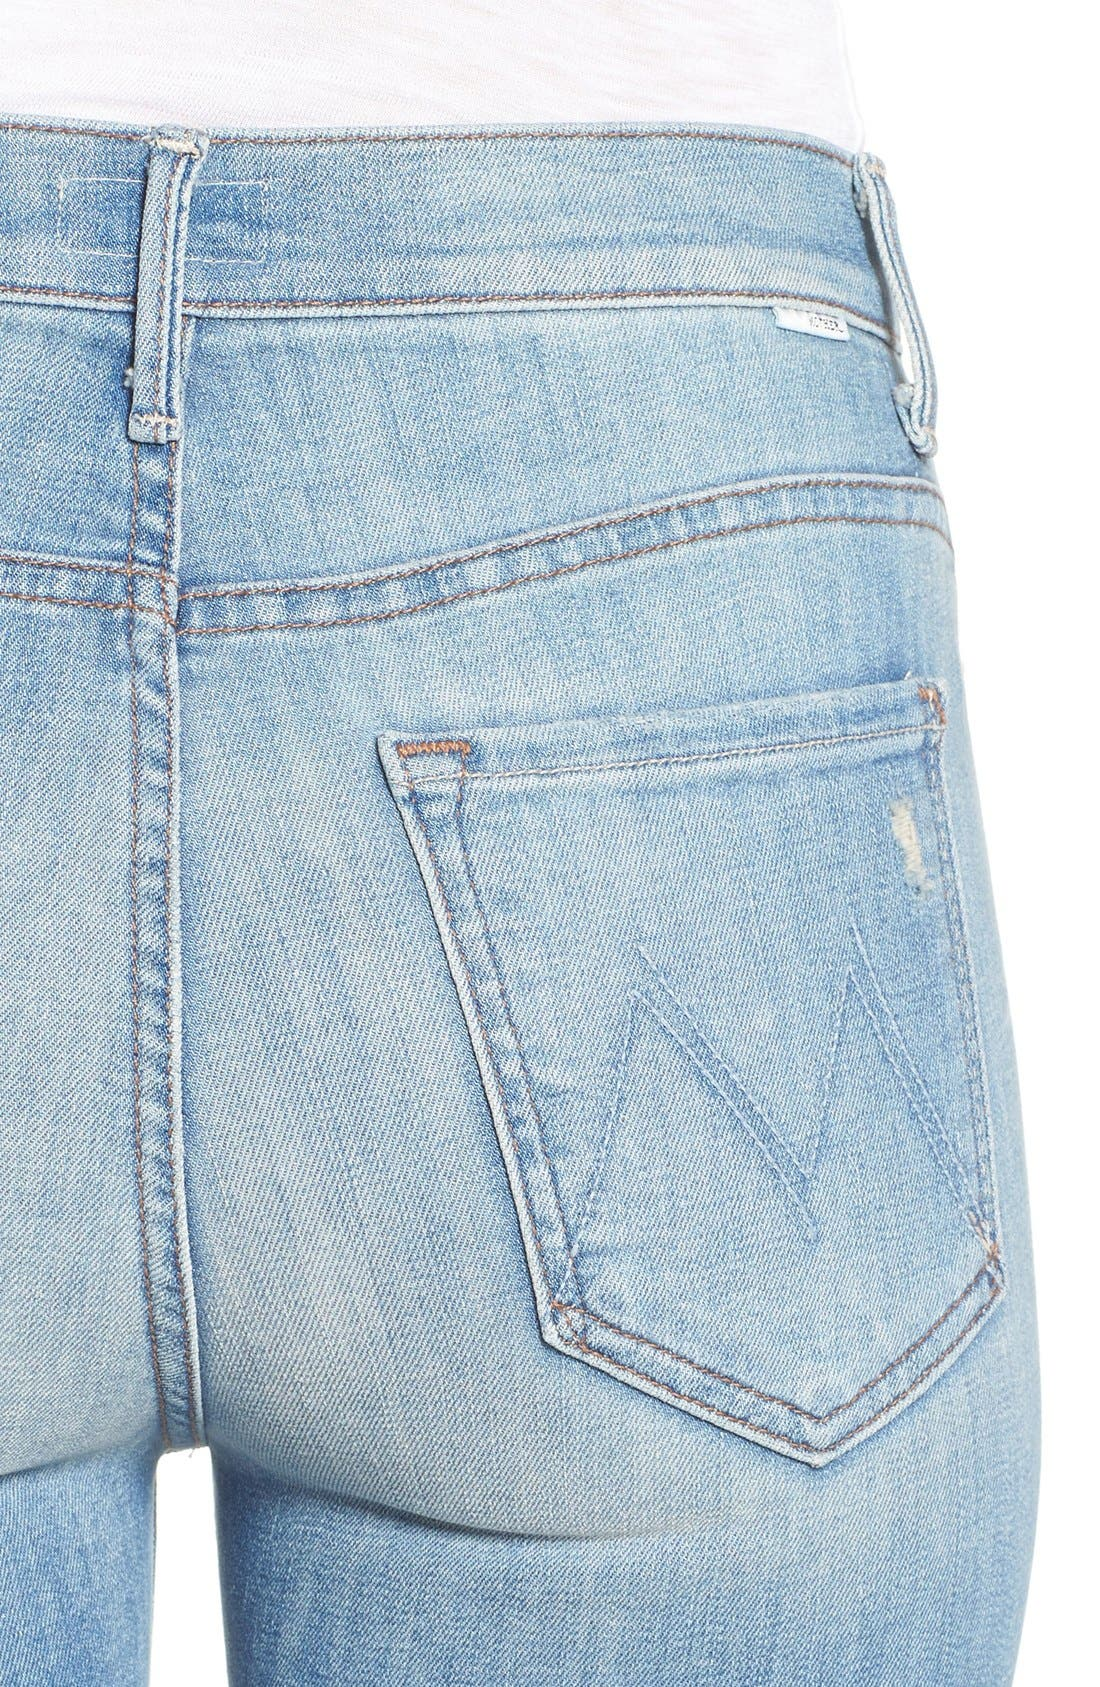 'The Insider' Crop Step Fray Jeans,                             Alternate thumbnail 4, color,                             SHAKE WELL